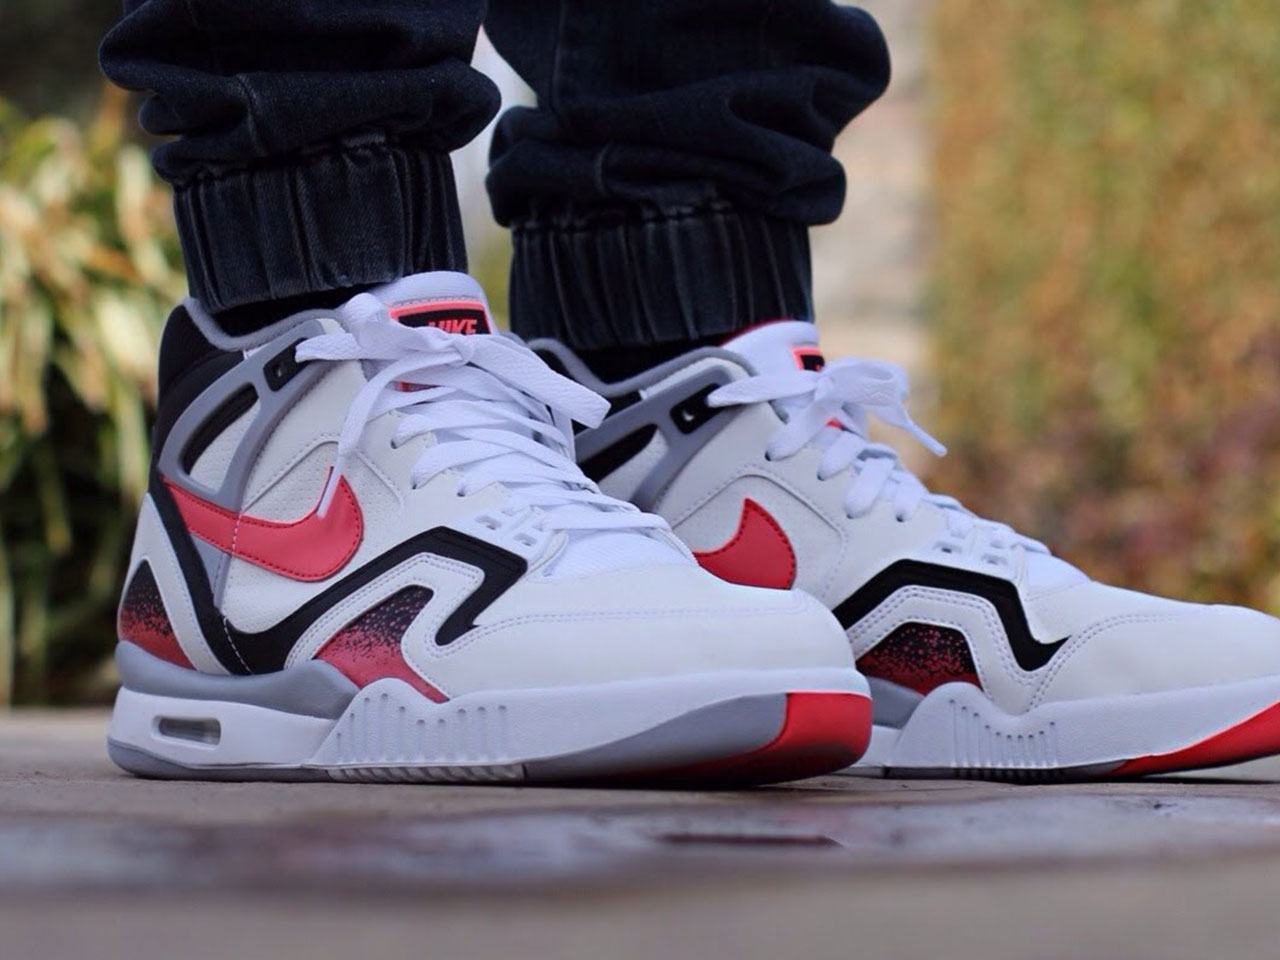 Nike air tech challenge ii hot lava 2014 onemesh - Nike air tech challenge ...